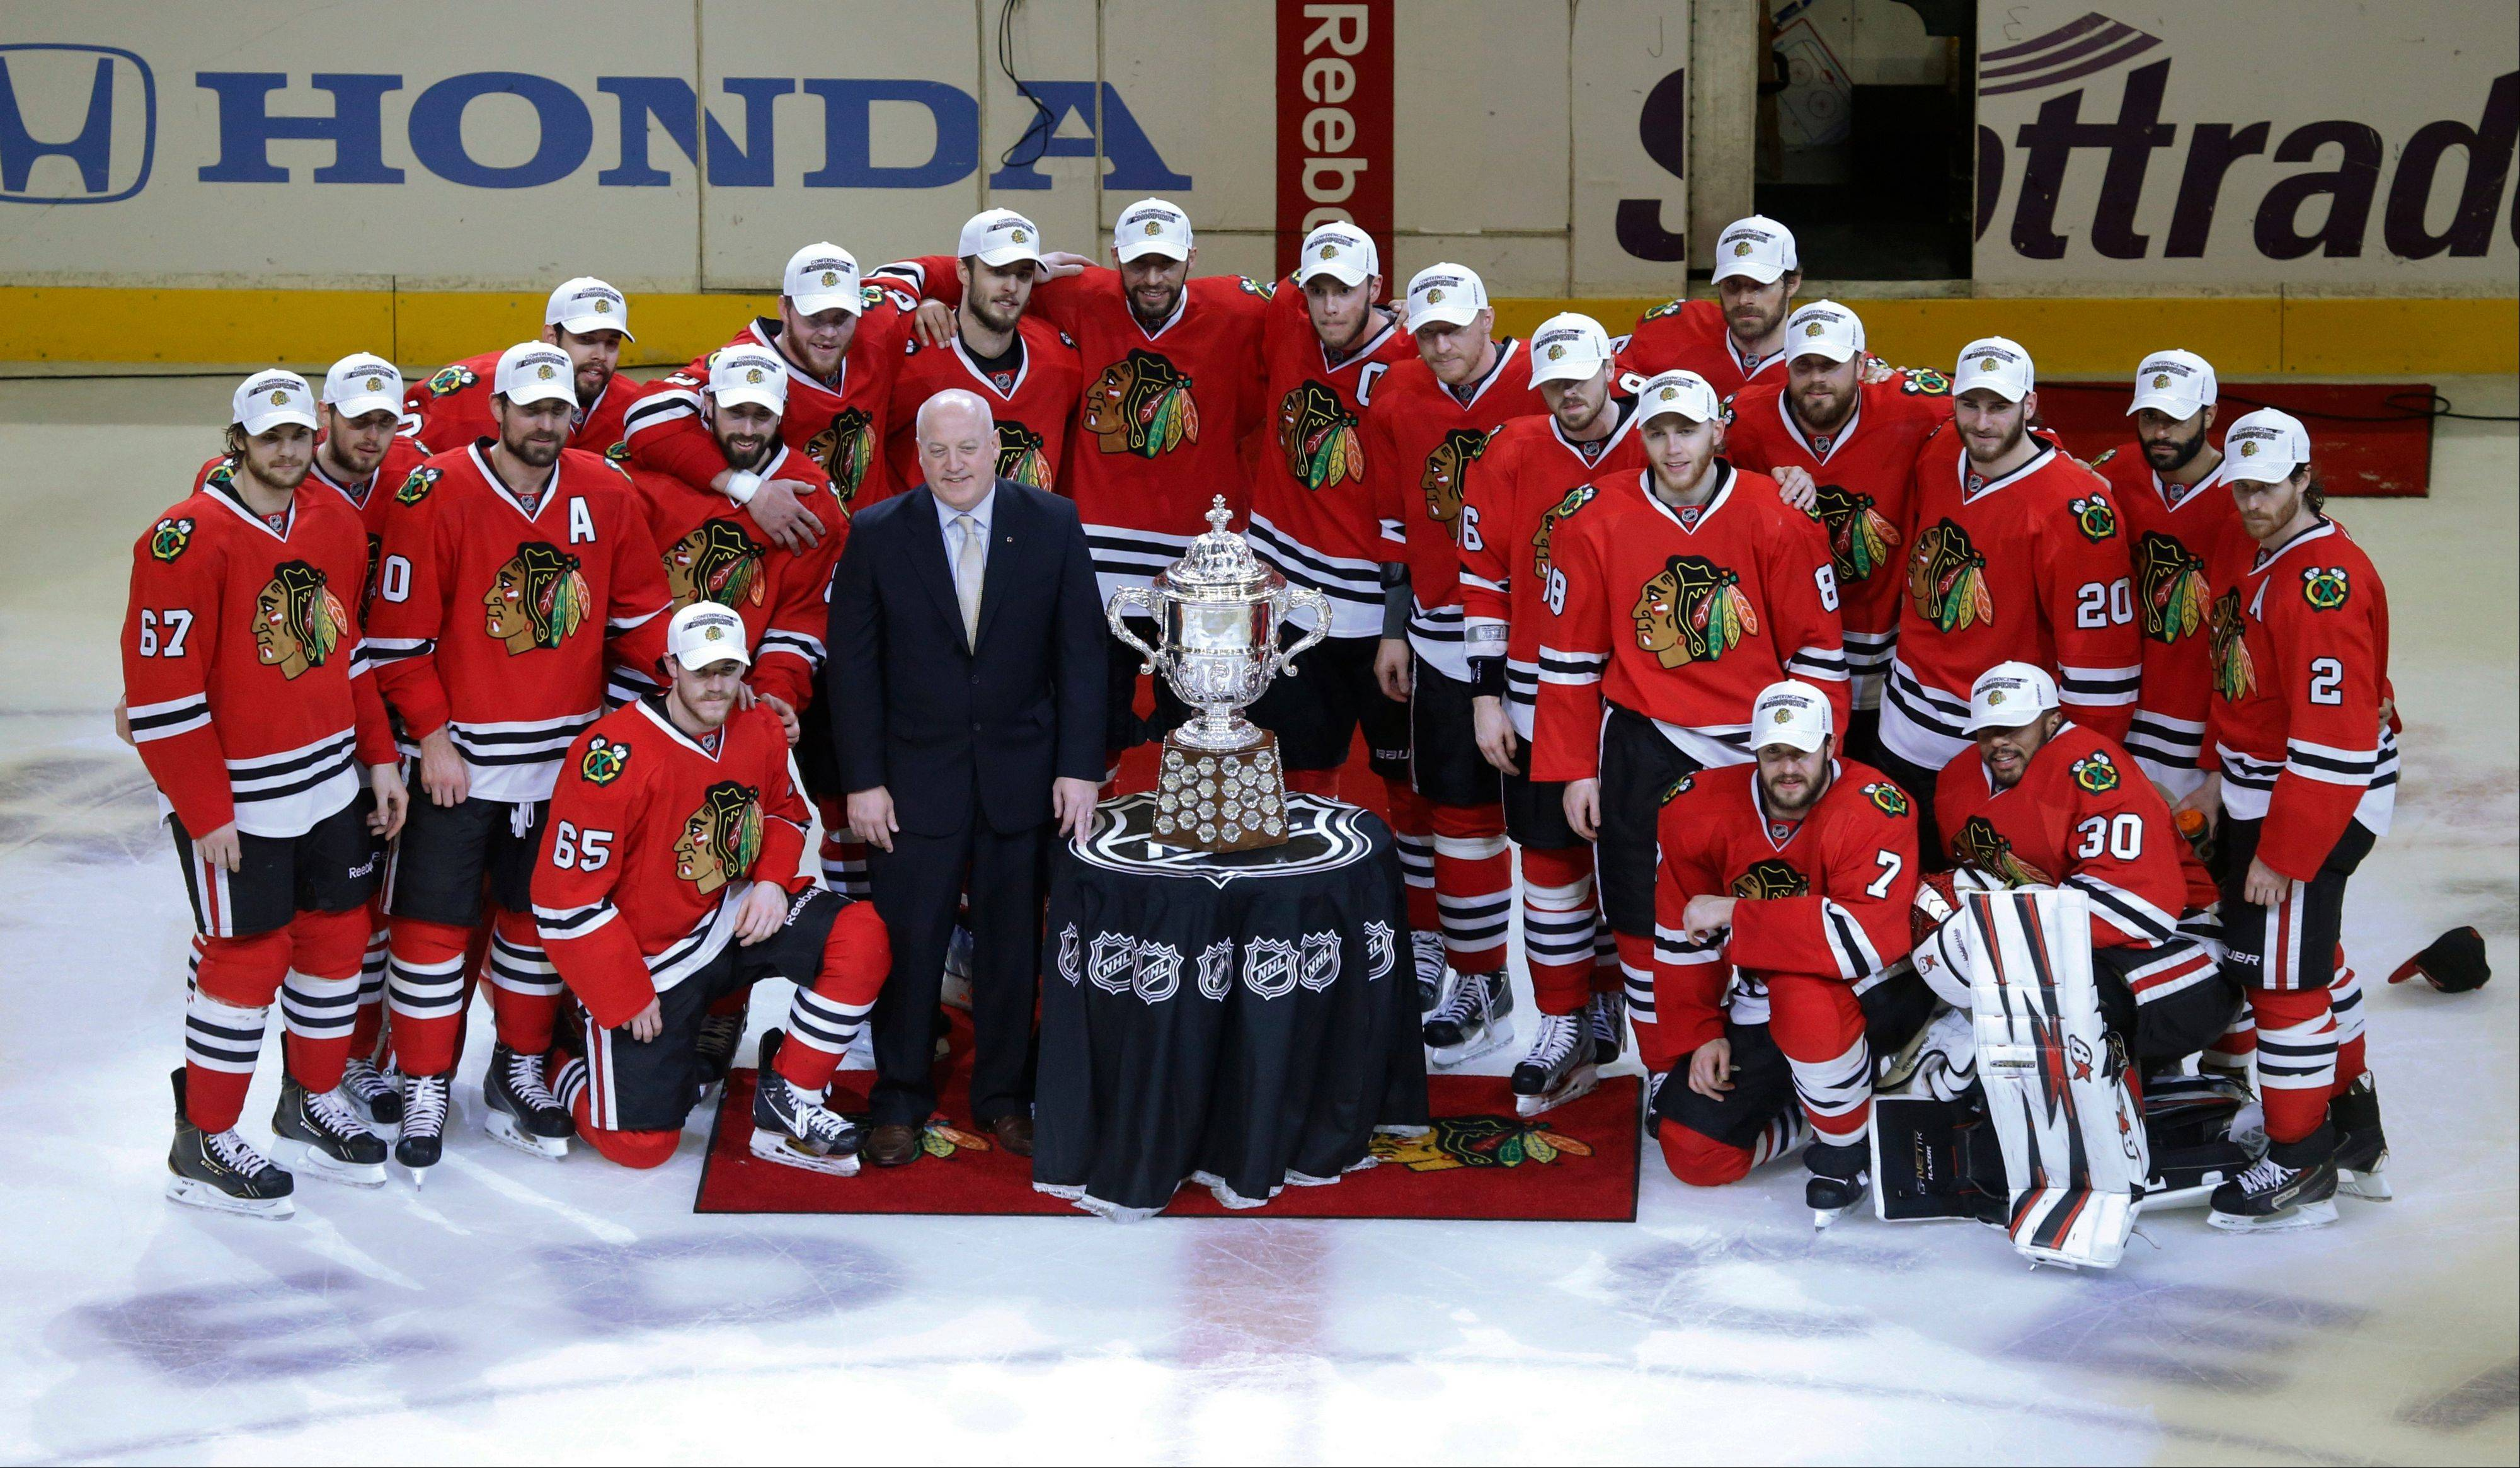 Chicago Blackhawks players pose with NHL deputy commissioner Bill Daly and the Western Conference Championship trophy as they win over Los Angeles Kings 4-3 in the second overtime period in Game 5 of the NHL hockey Stanley Cup playoffs Western Conference finals, Saturday, June 8, 2013, in Chicago. The Blackhawks advance to the Stanley Cup finals.